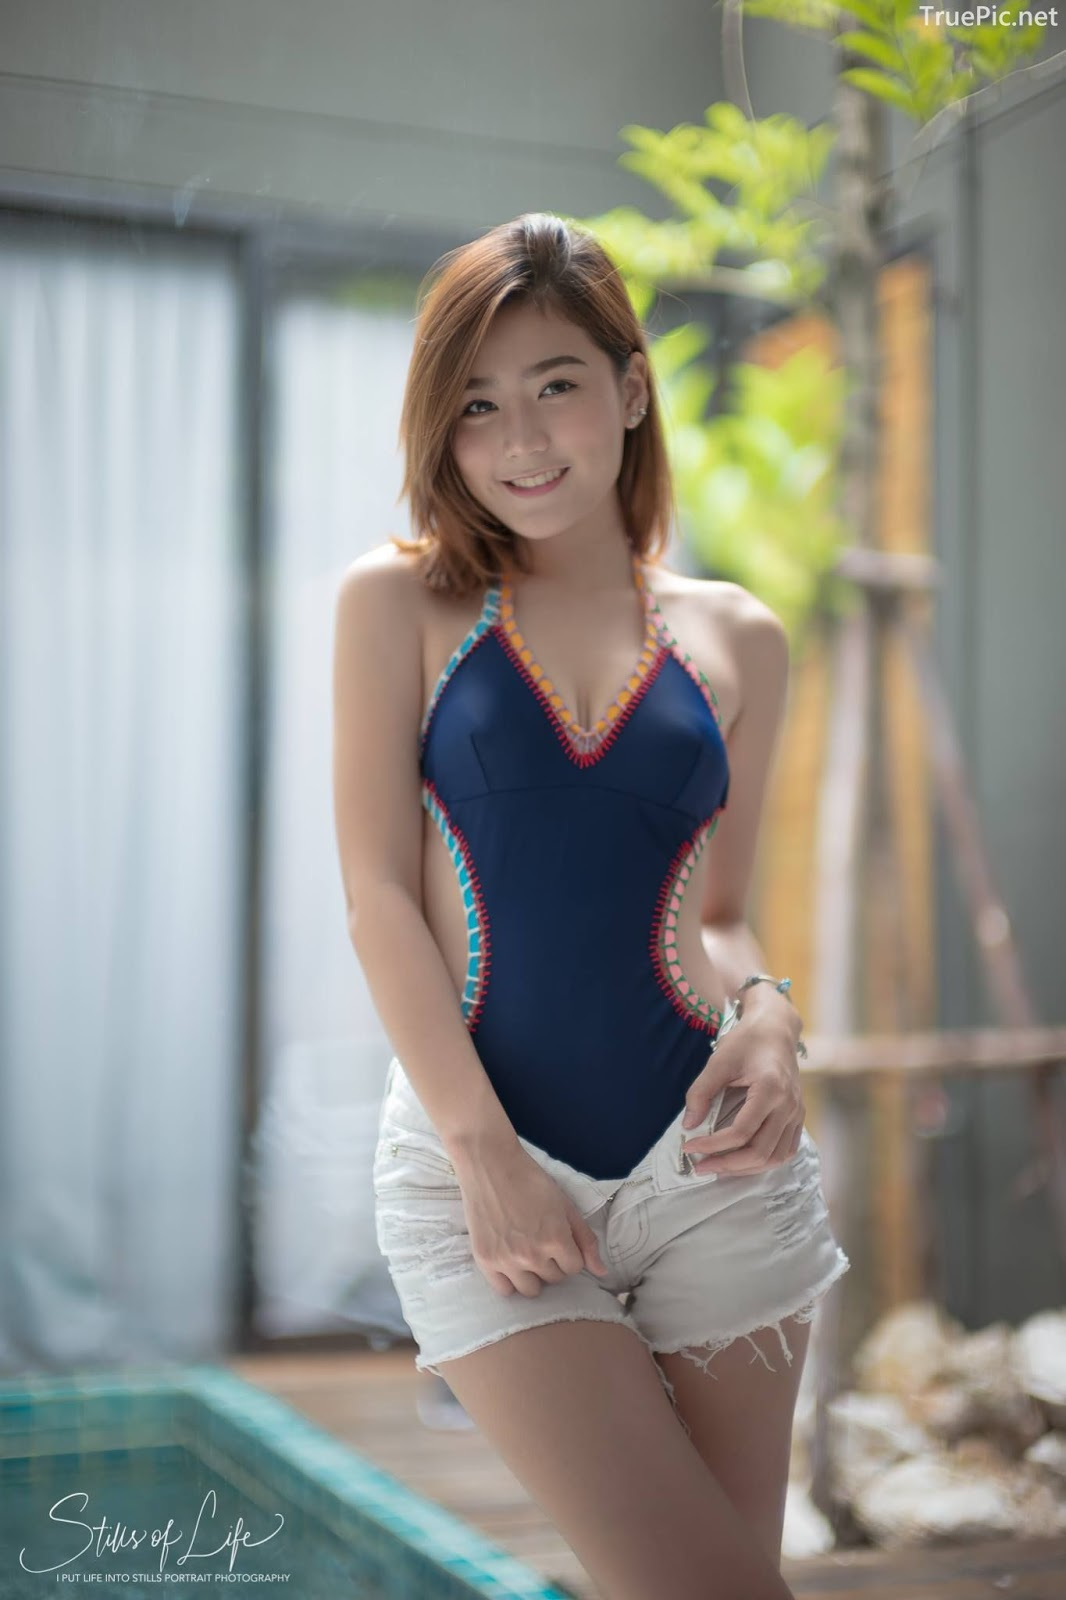 Thailand model - Pattaravadee Boonmeesup - Earn Blue Swimsuit